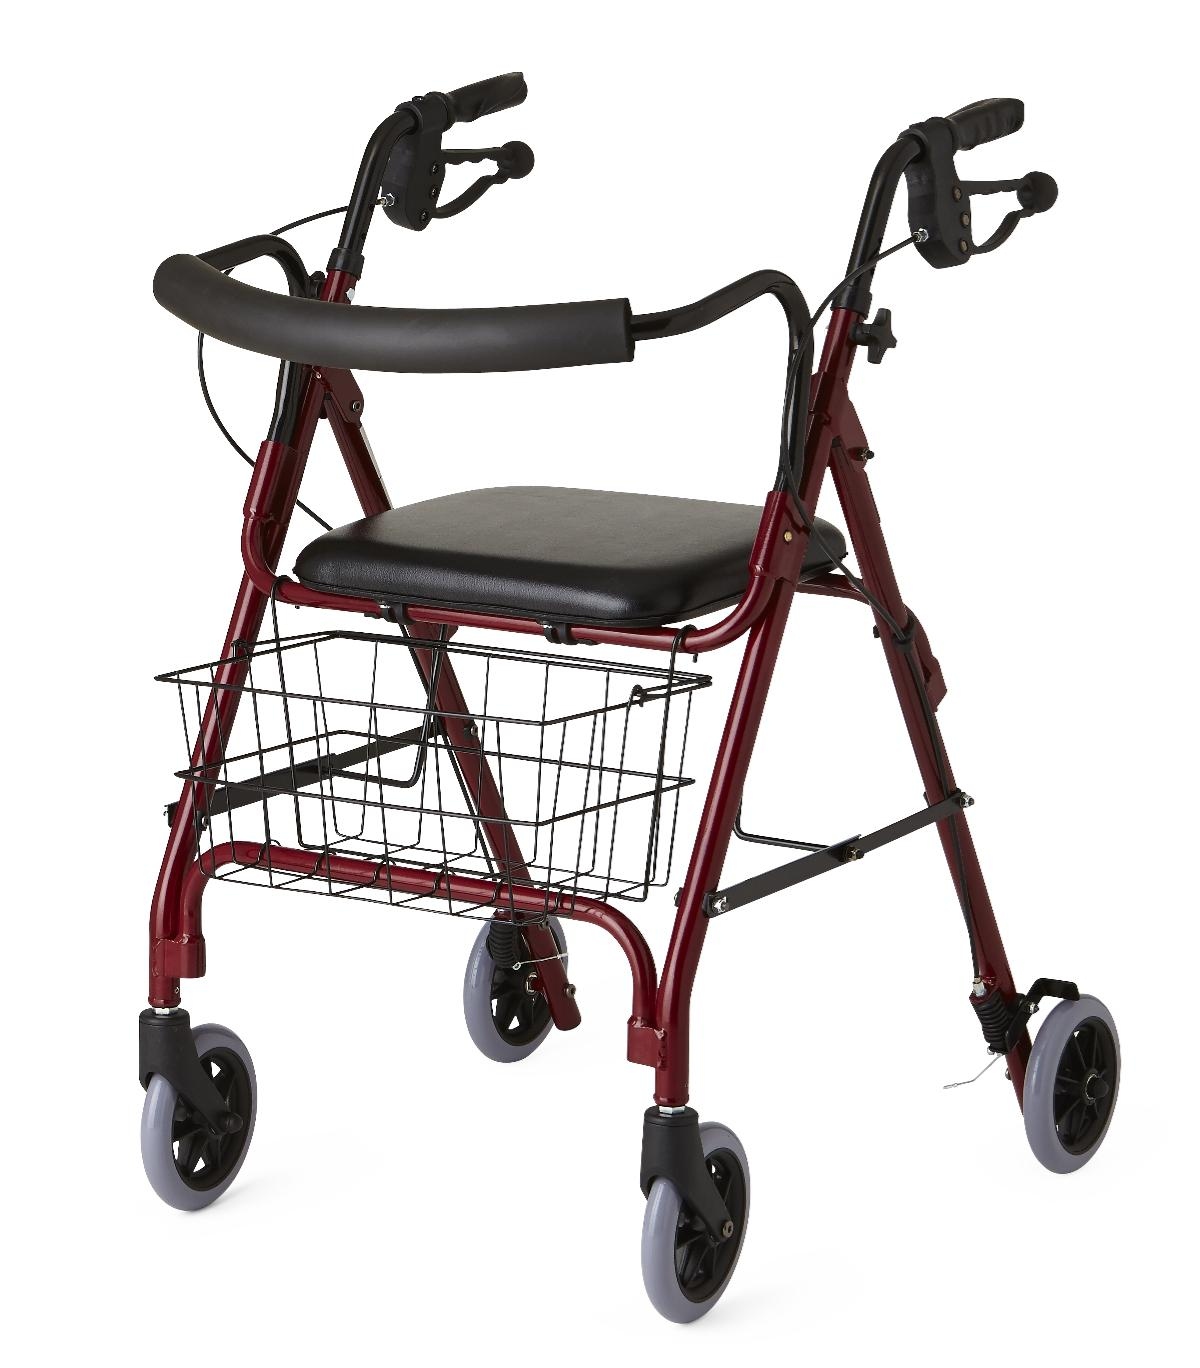 Medline Deluxe Rollator with Curved Back-Black